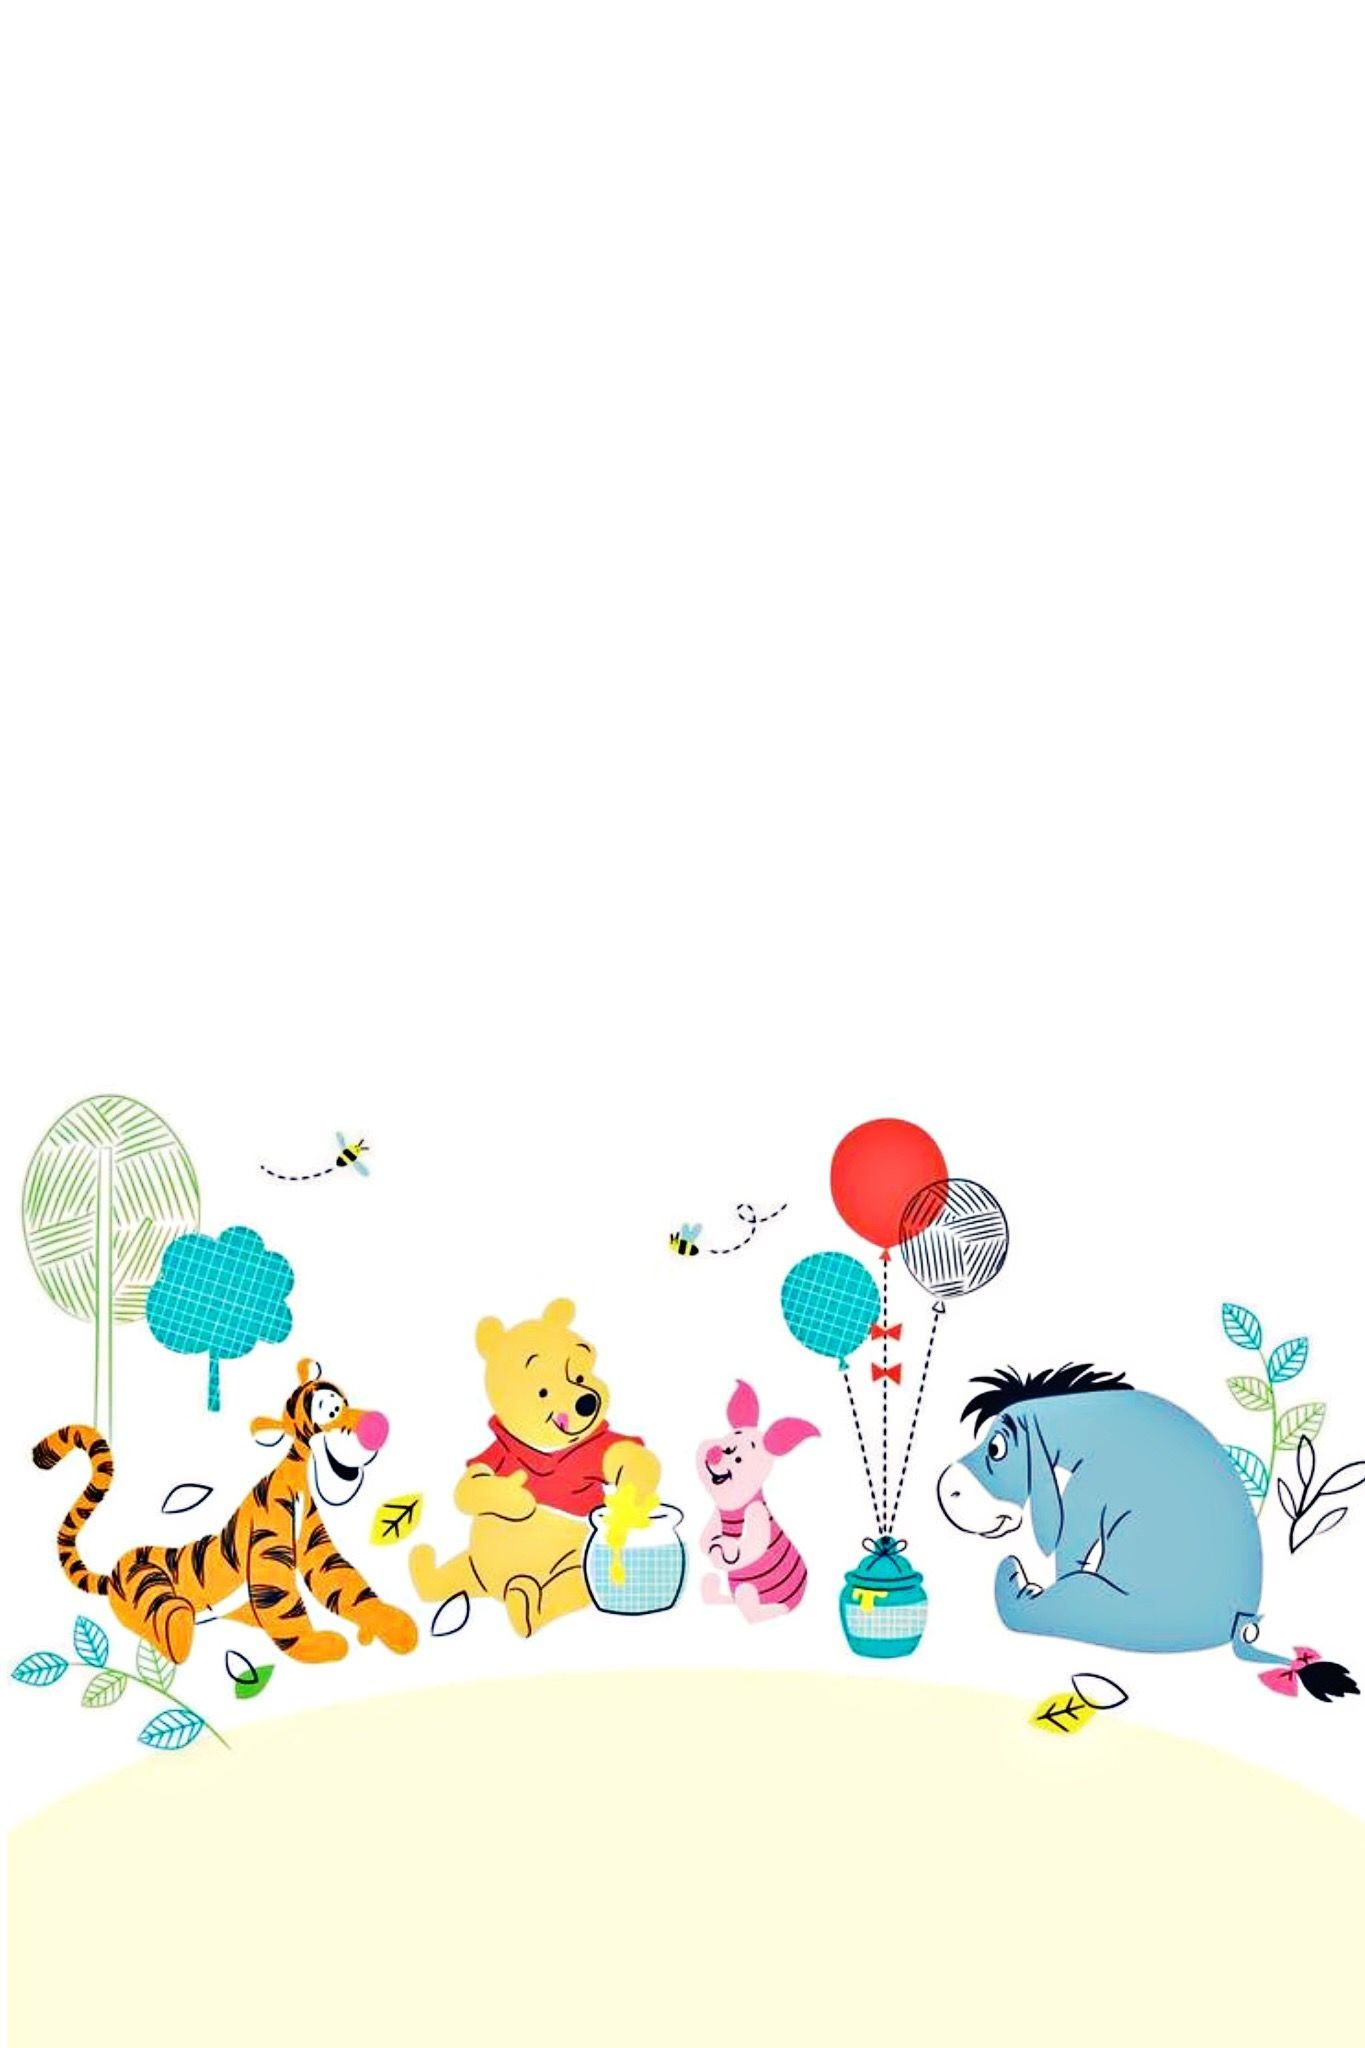 Res: 1365x2048, Iphone Backgrounds, Wallpaper Backgrounds, Iphone Wallpapers, Cellphone  Wallpaper, Disney Wallpaper, Eeyore, Pooh Bear, Papo, Marble